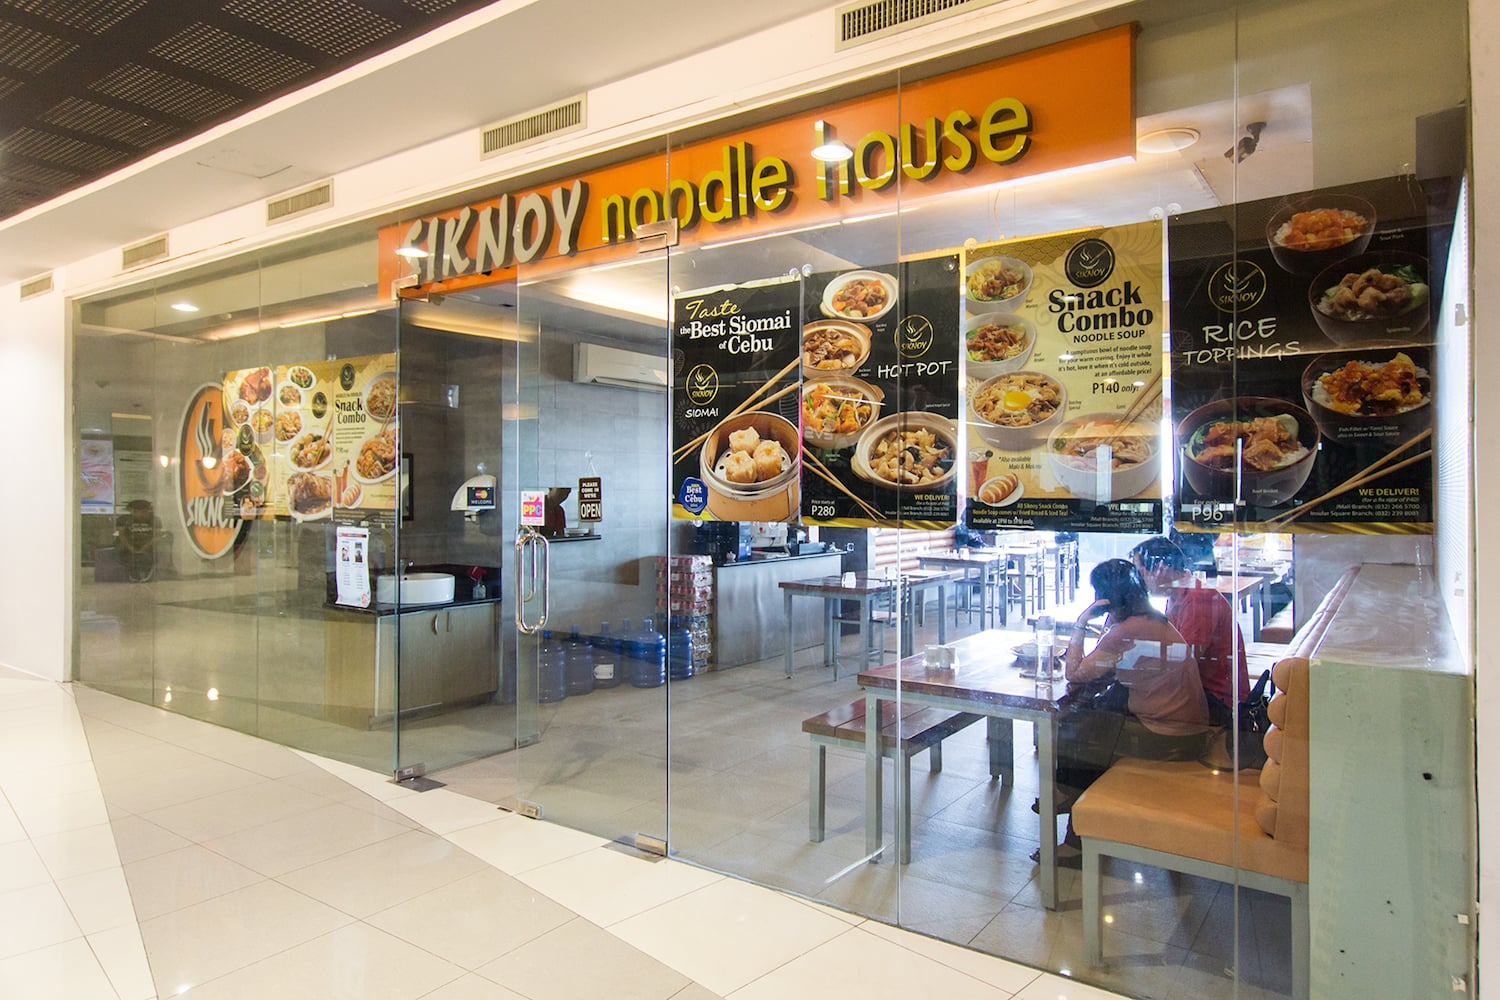 siknoy noodle house(イミグレーション前)の入り口